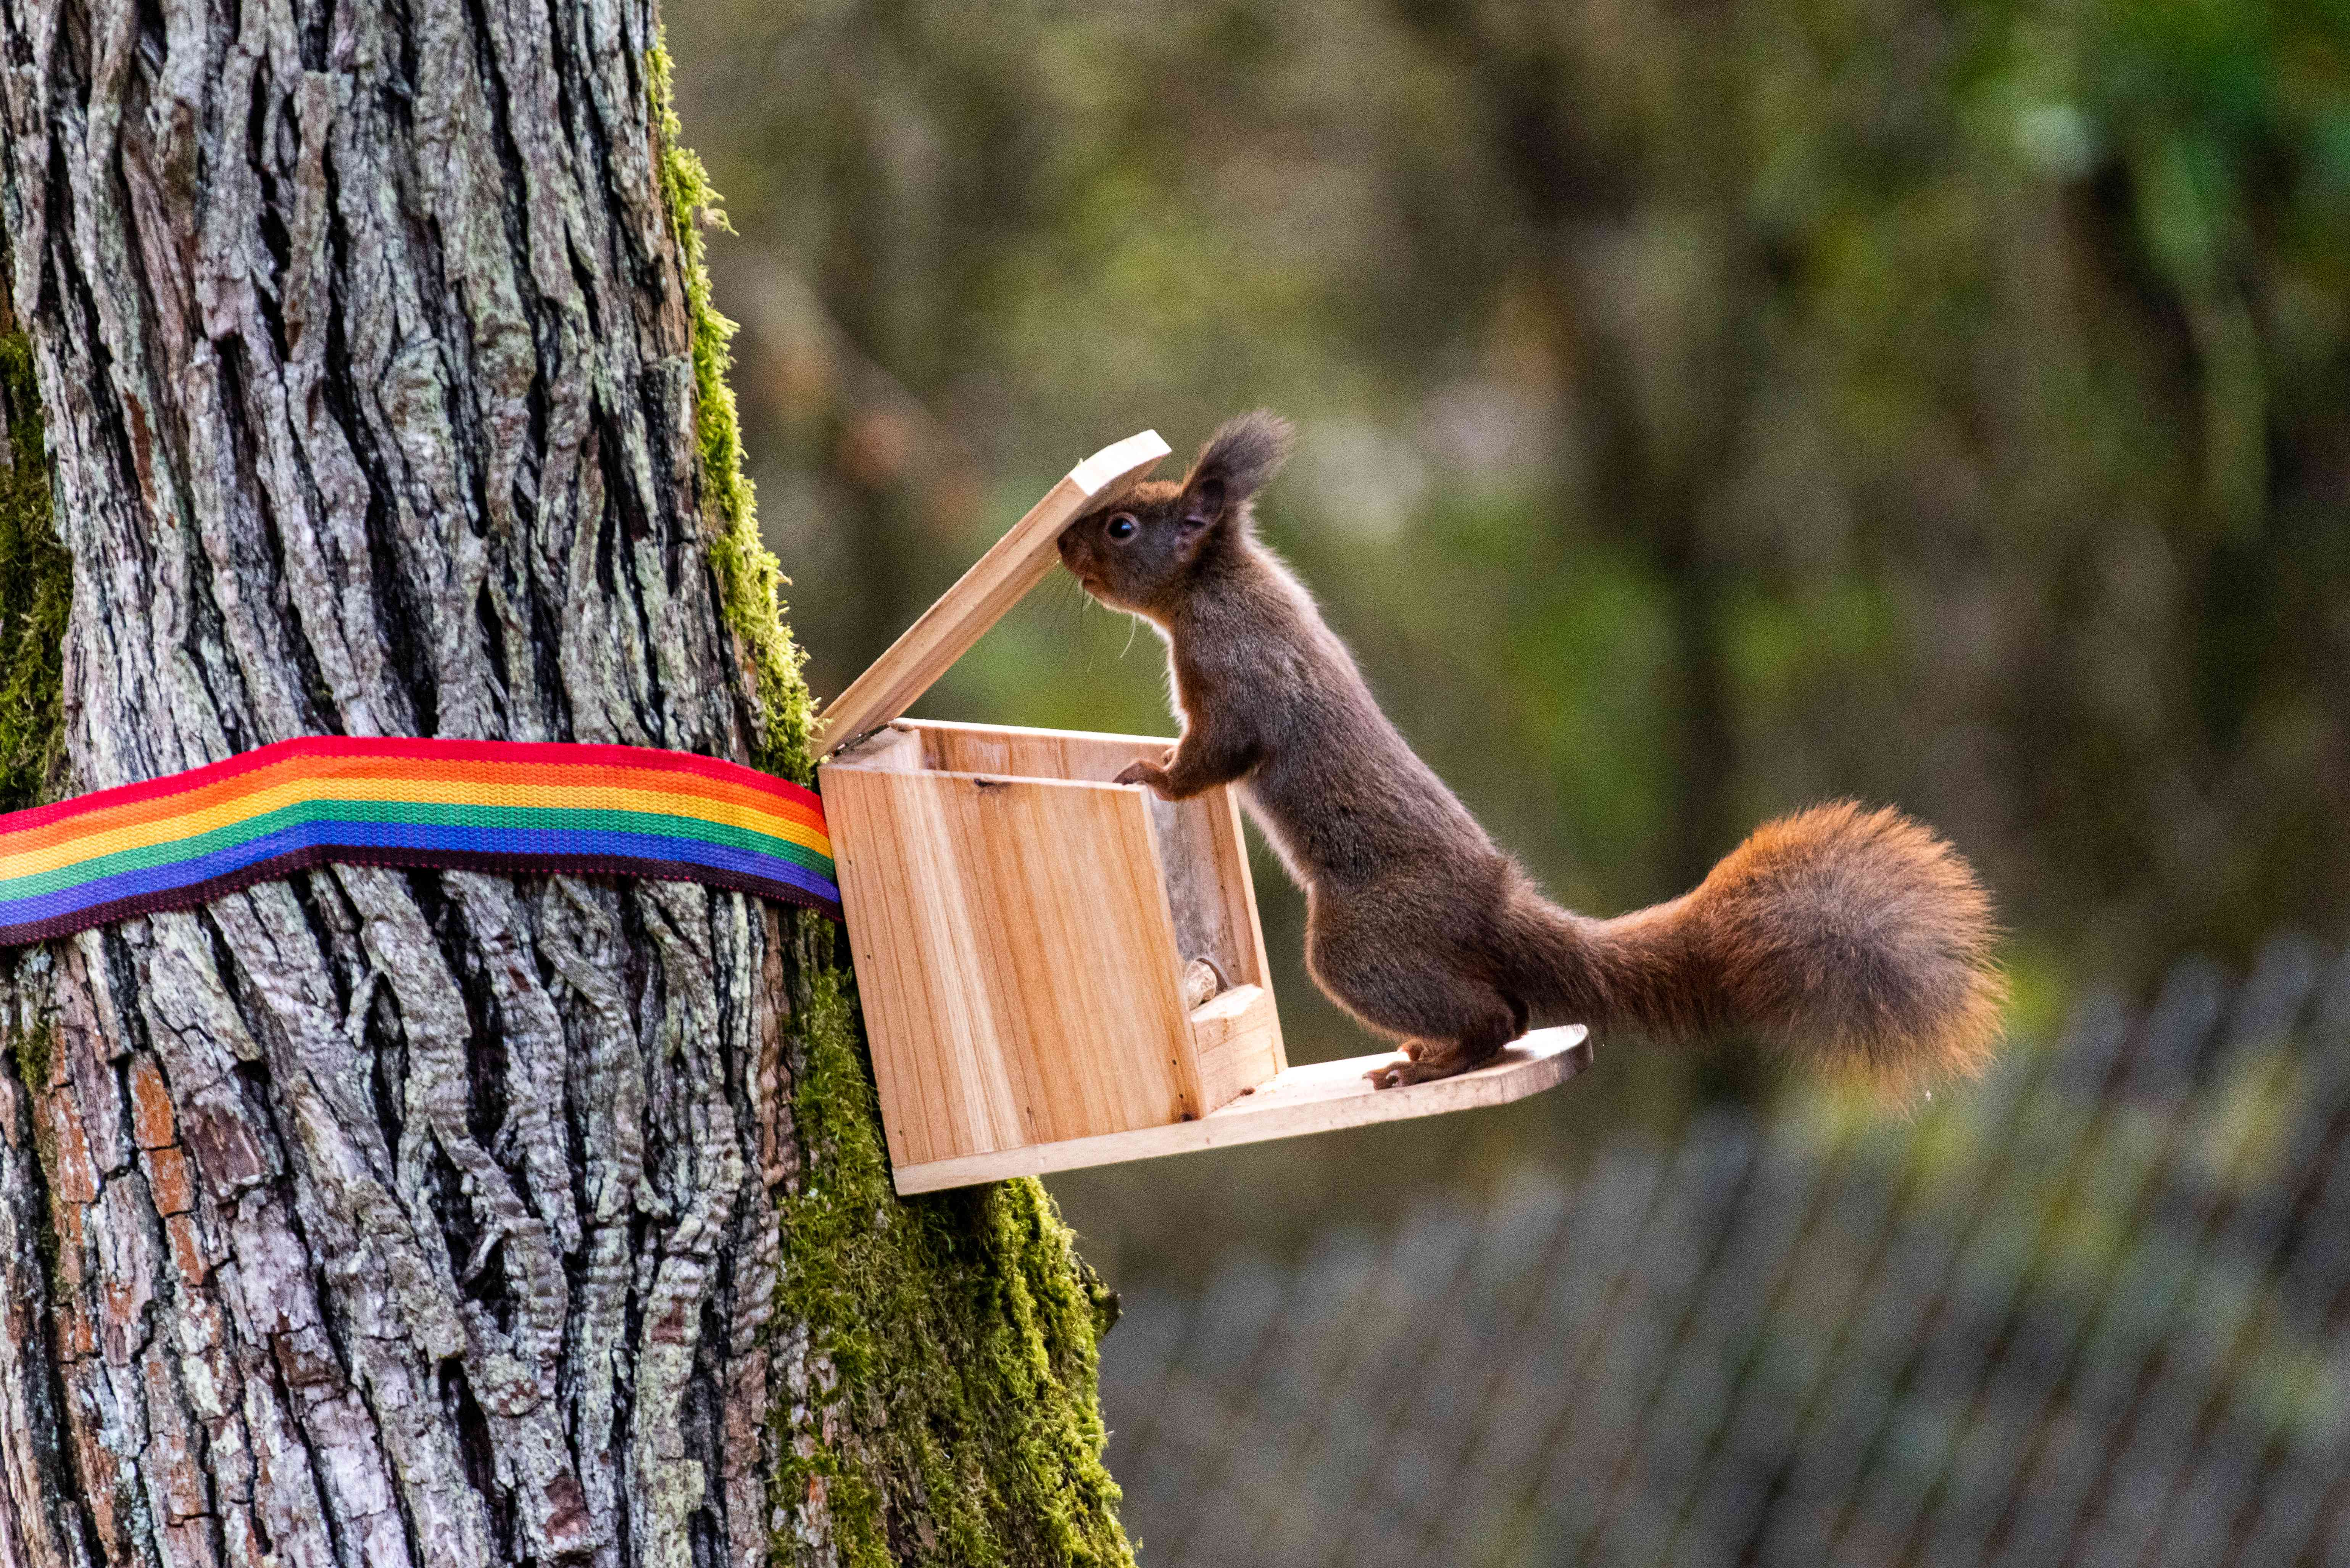 Squirrel lifting lid on a squirrel feeder with its head